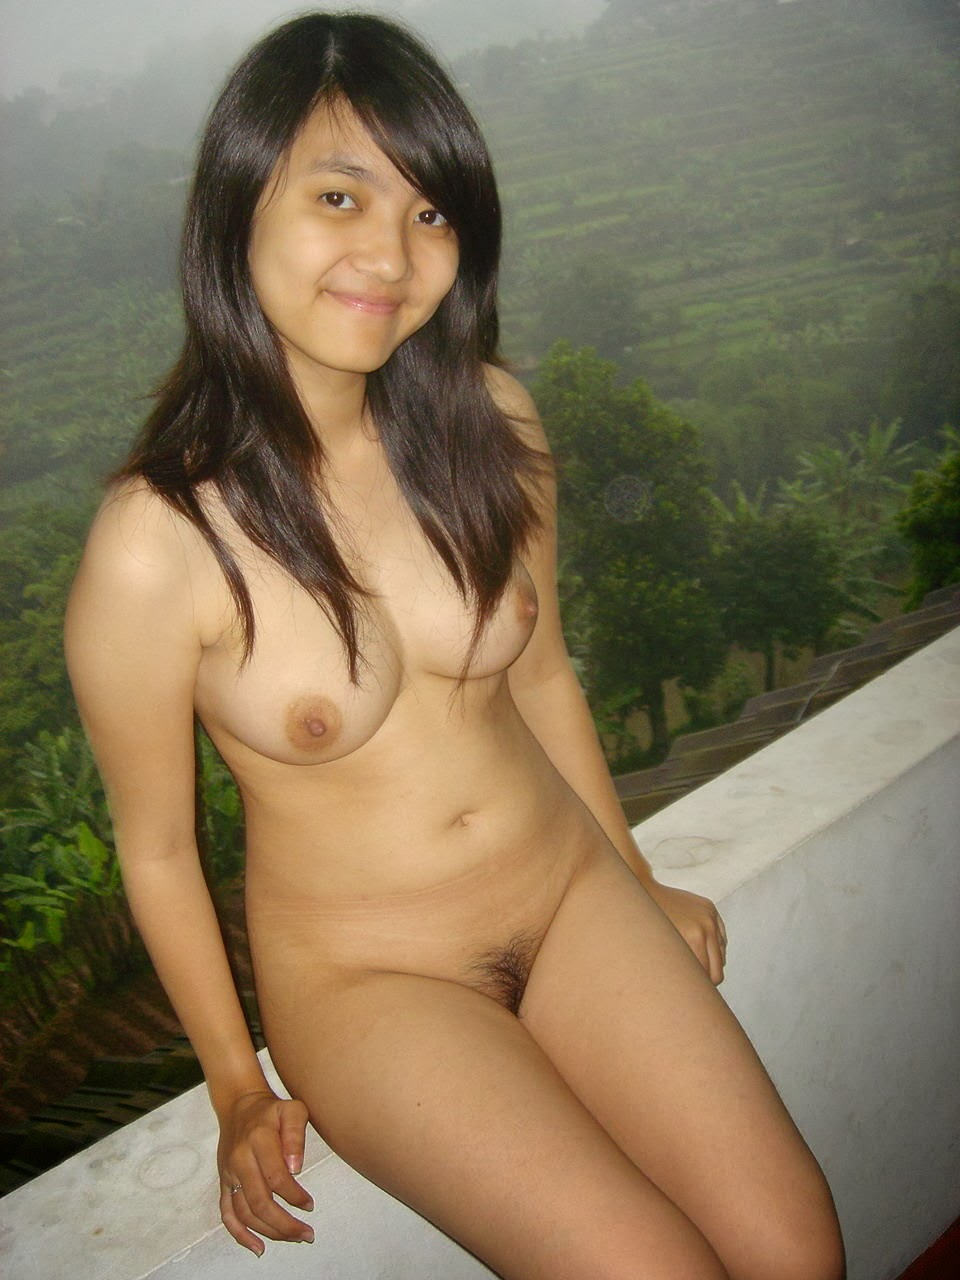 Pity, Indonesian hot nude girl not right